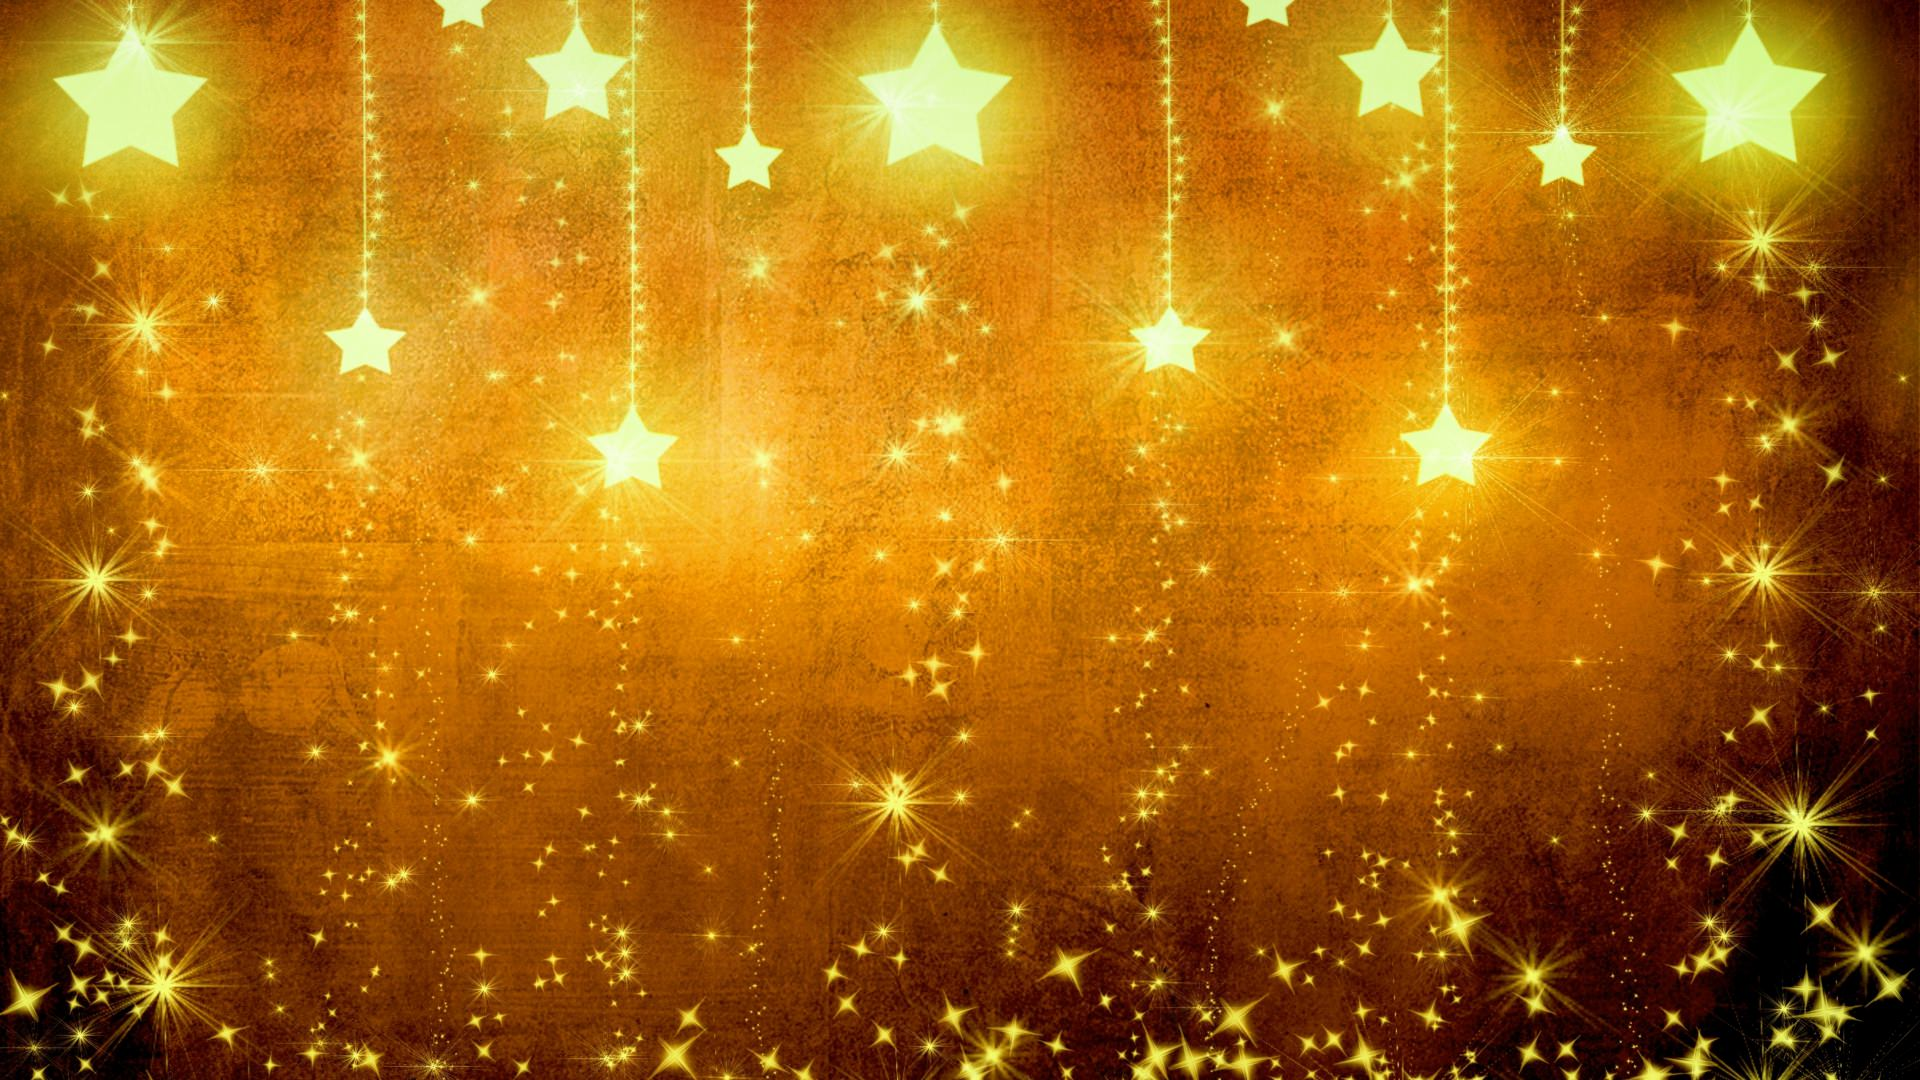 Golden Ligjht Background